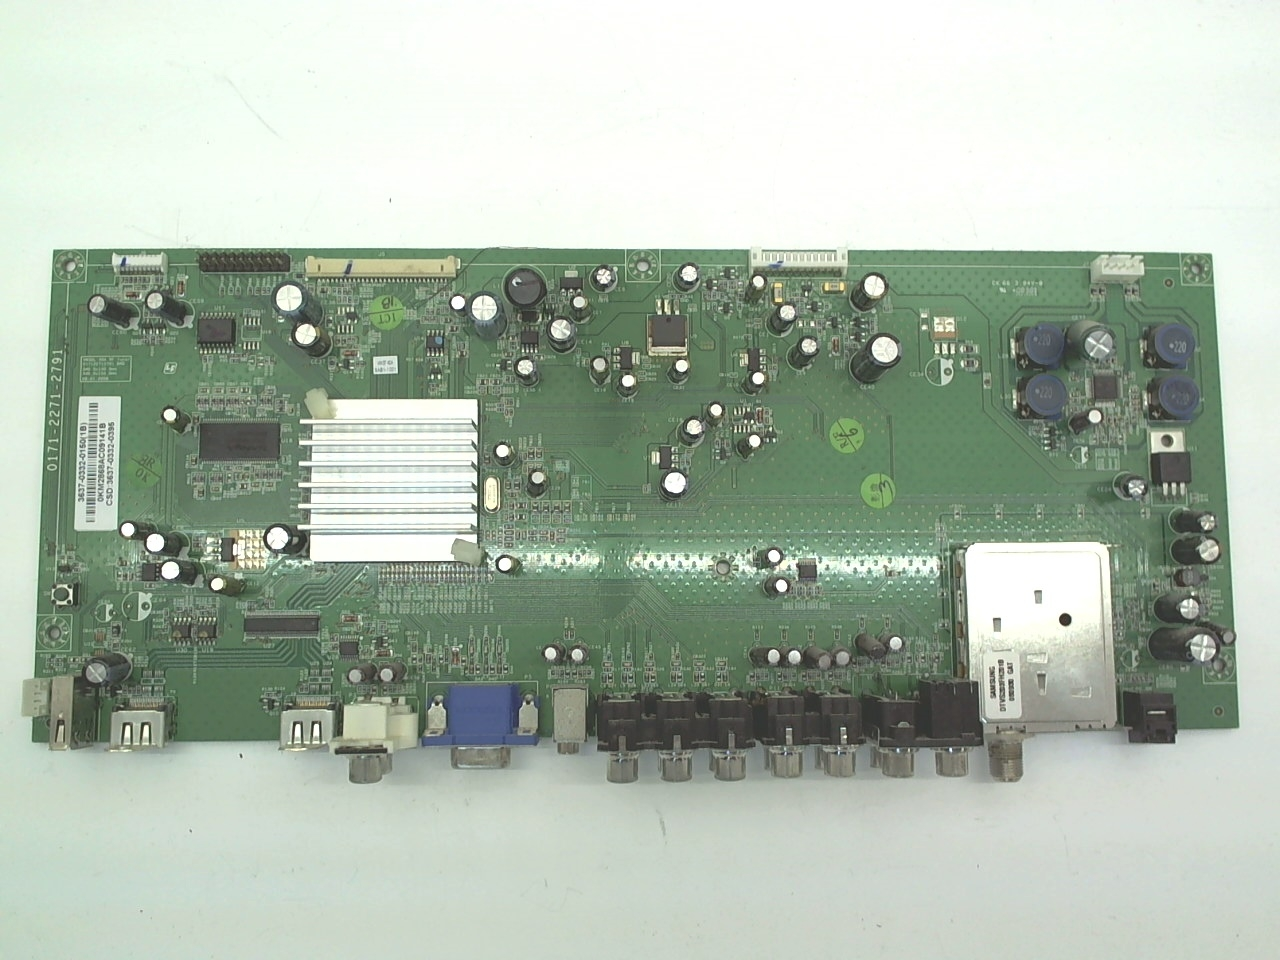 Vizio TV Model VW37LHDTV40A Main Board Part Number 3637-0332-0150